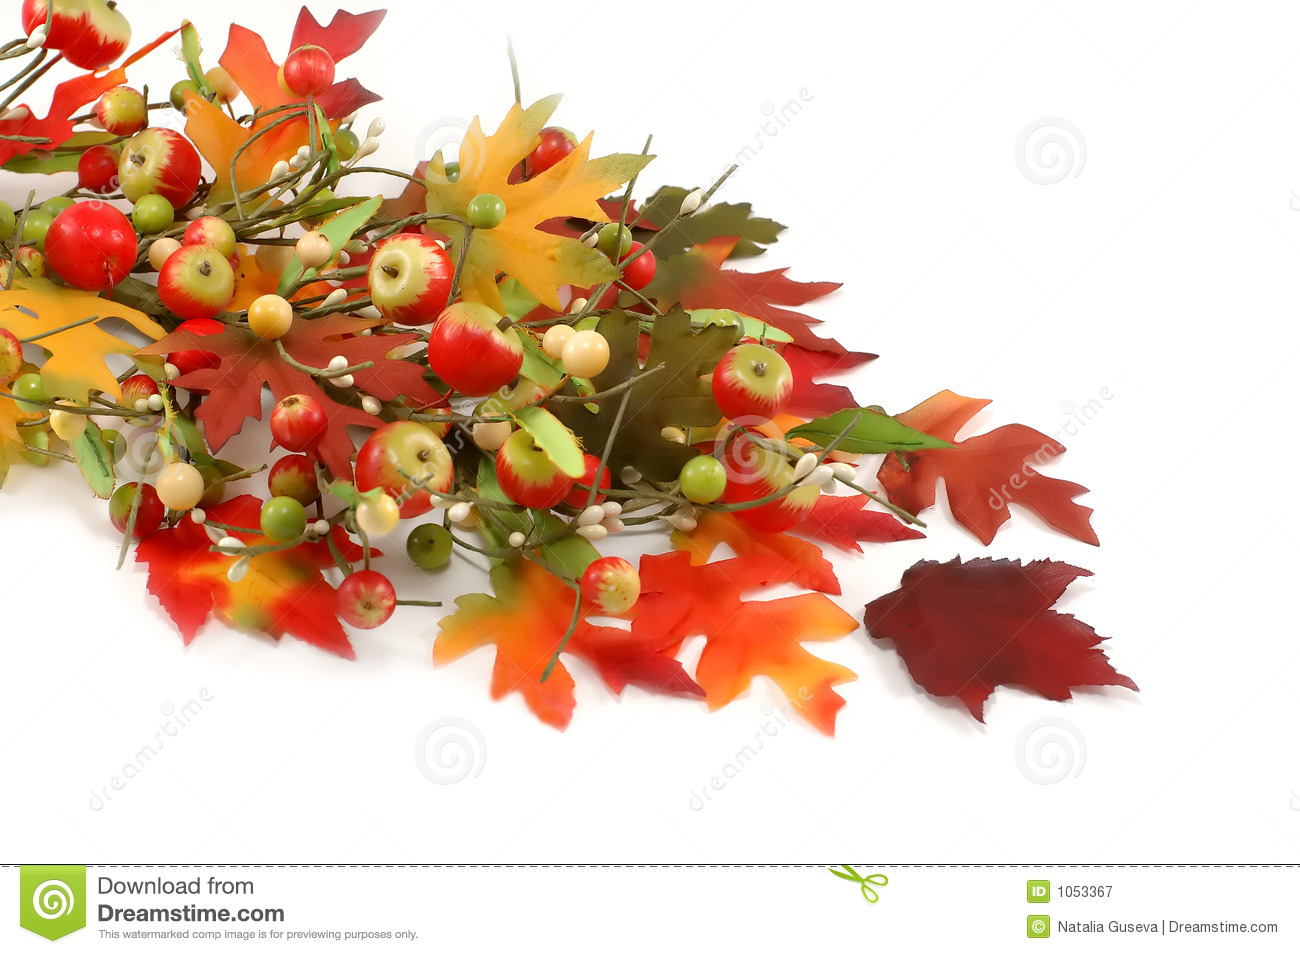 Fall leafs and apples decoration thanksgiving royalty for Apples decoration